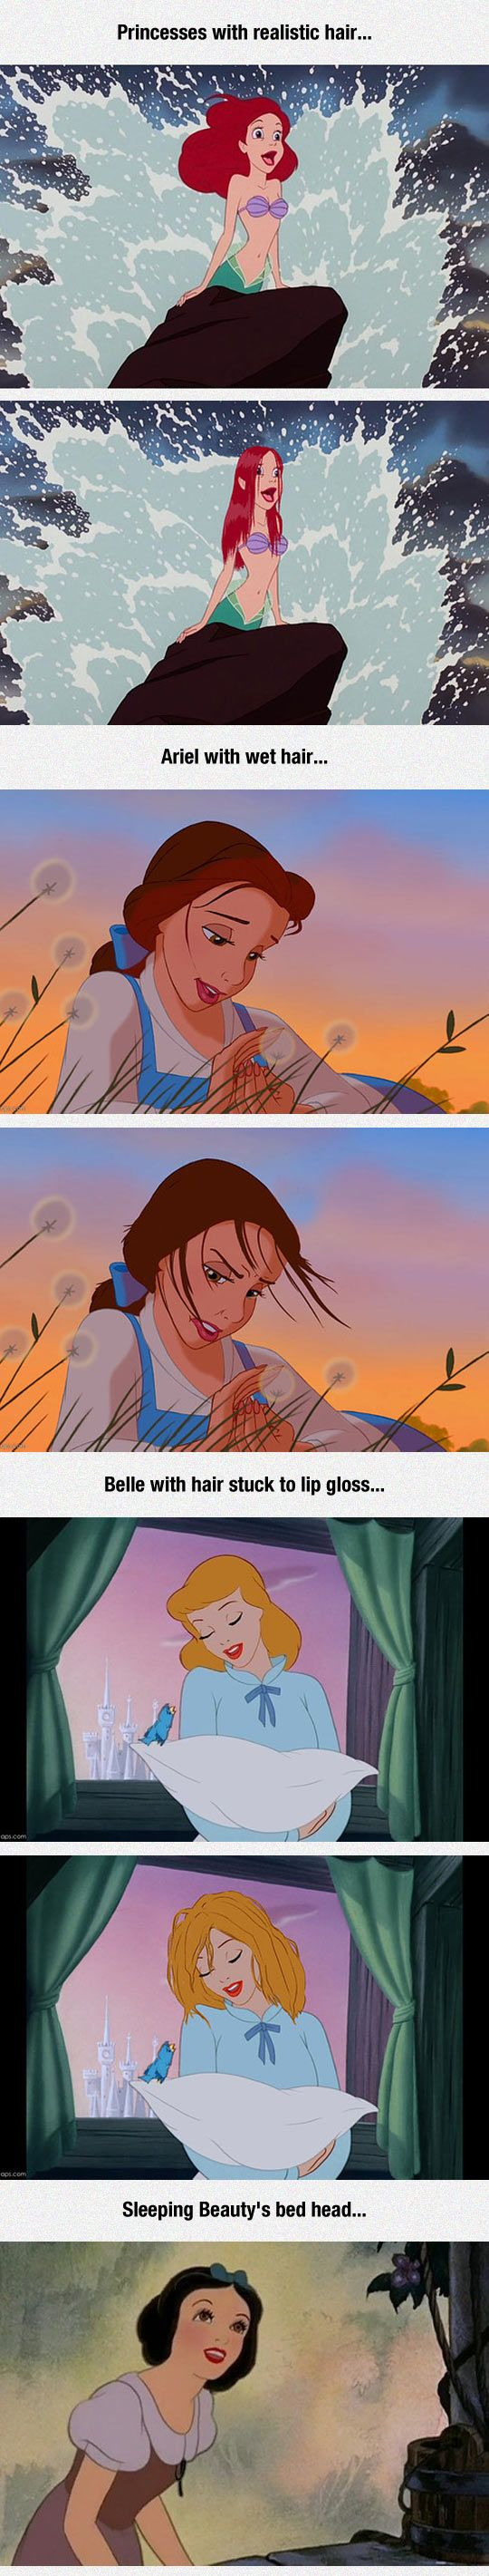 Princesses With Realistic Hair